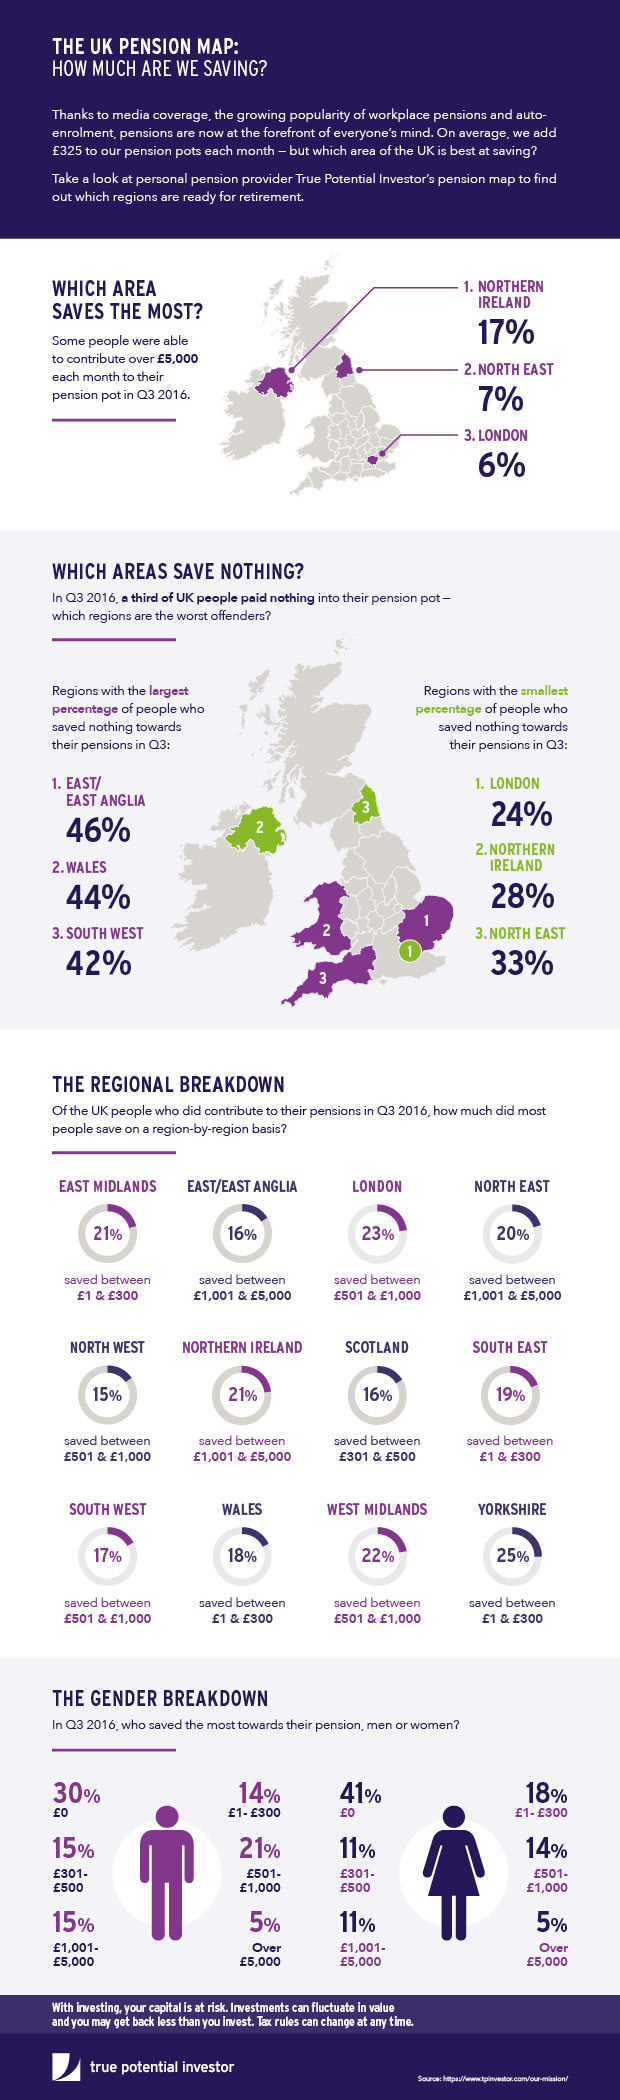 Pensions: How Much Is The UK Population Saving?